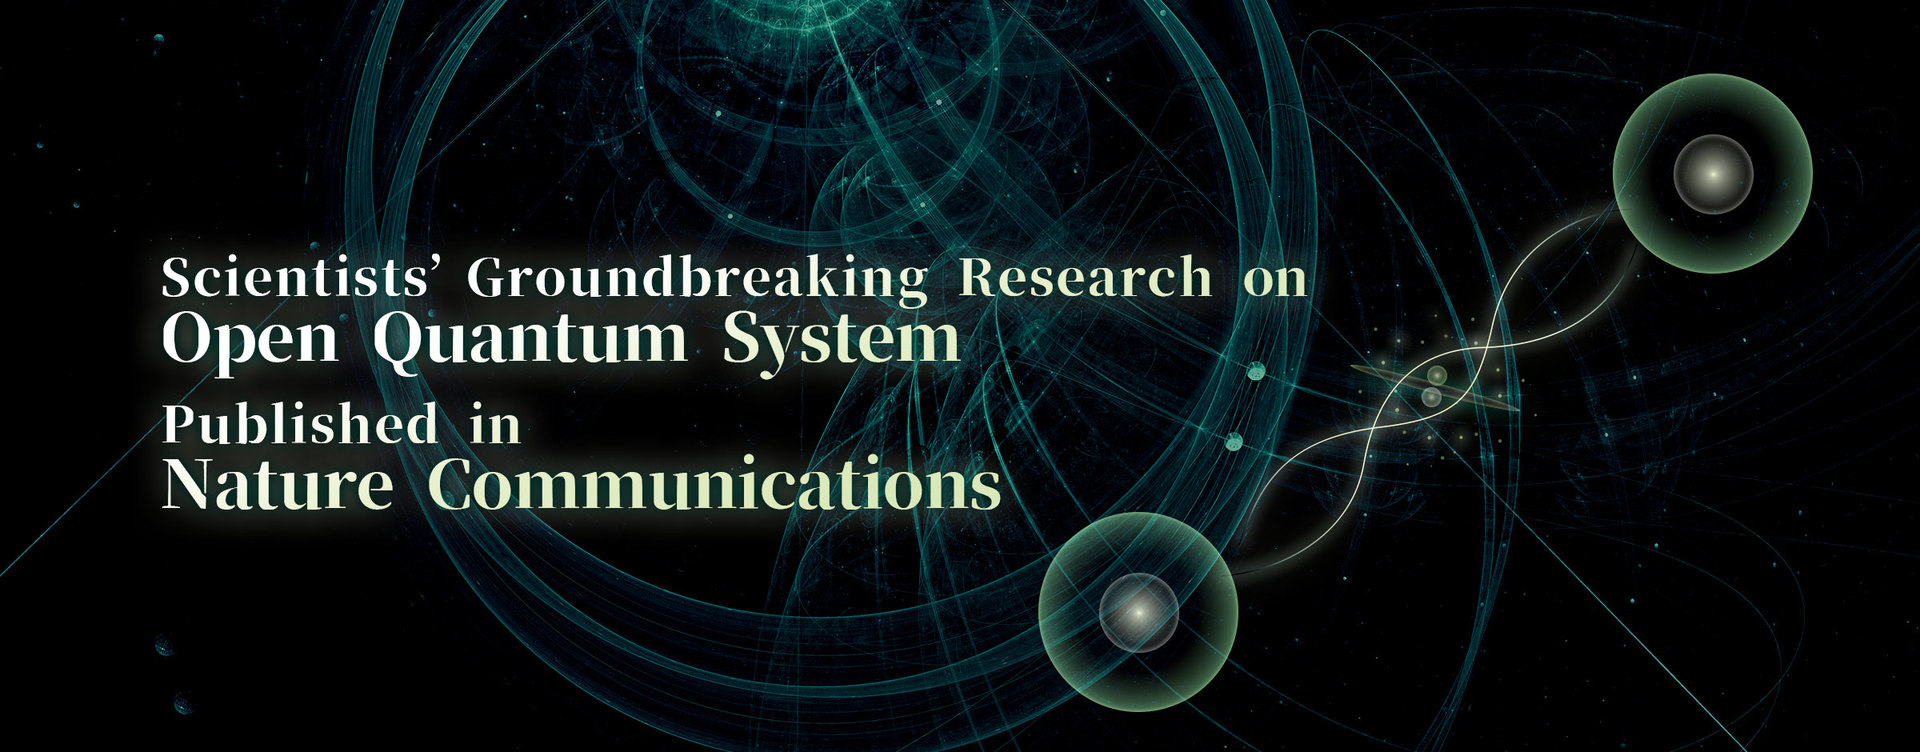 NCKU Scientists' Groundbreaking Research on Open Quantum System